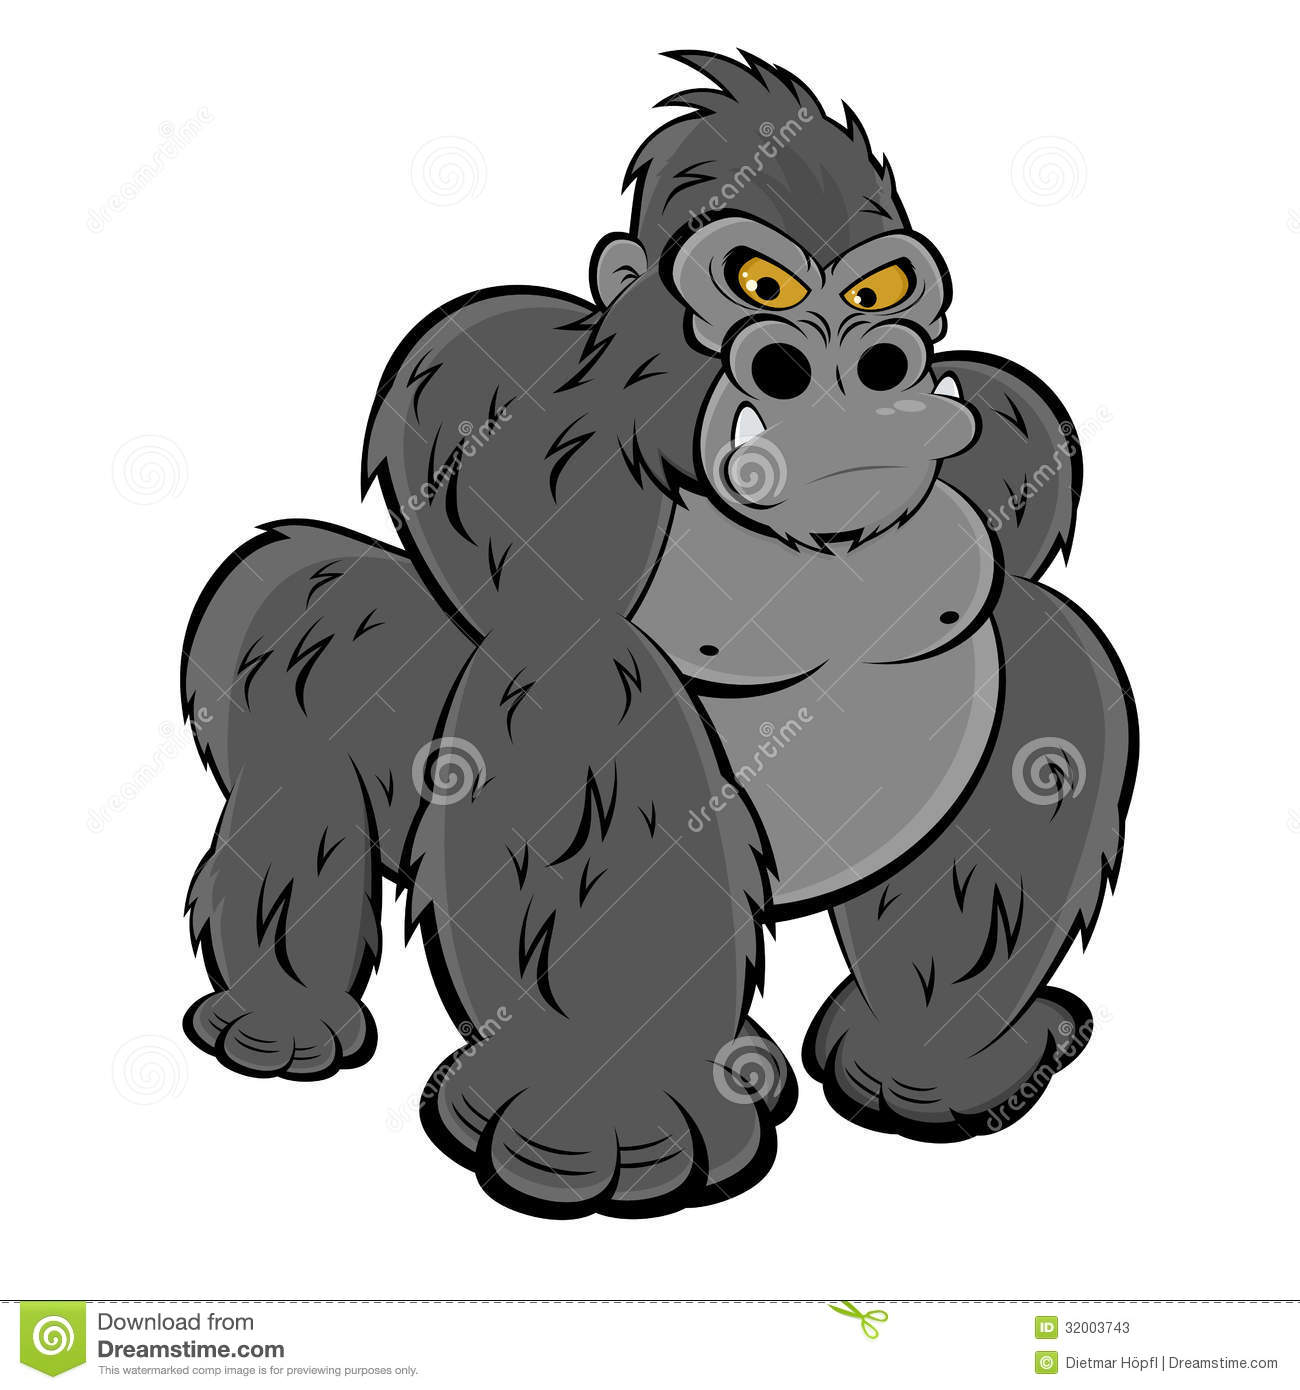 Angry Gorilla Stock Photos - Image: 32003743